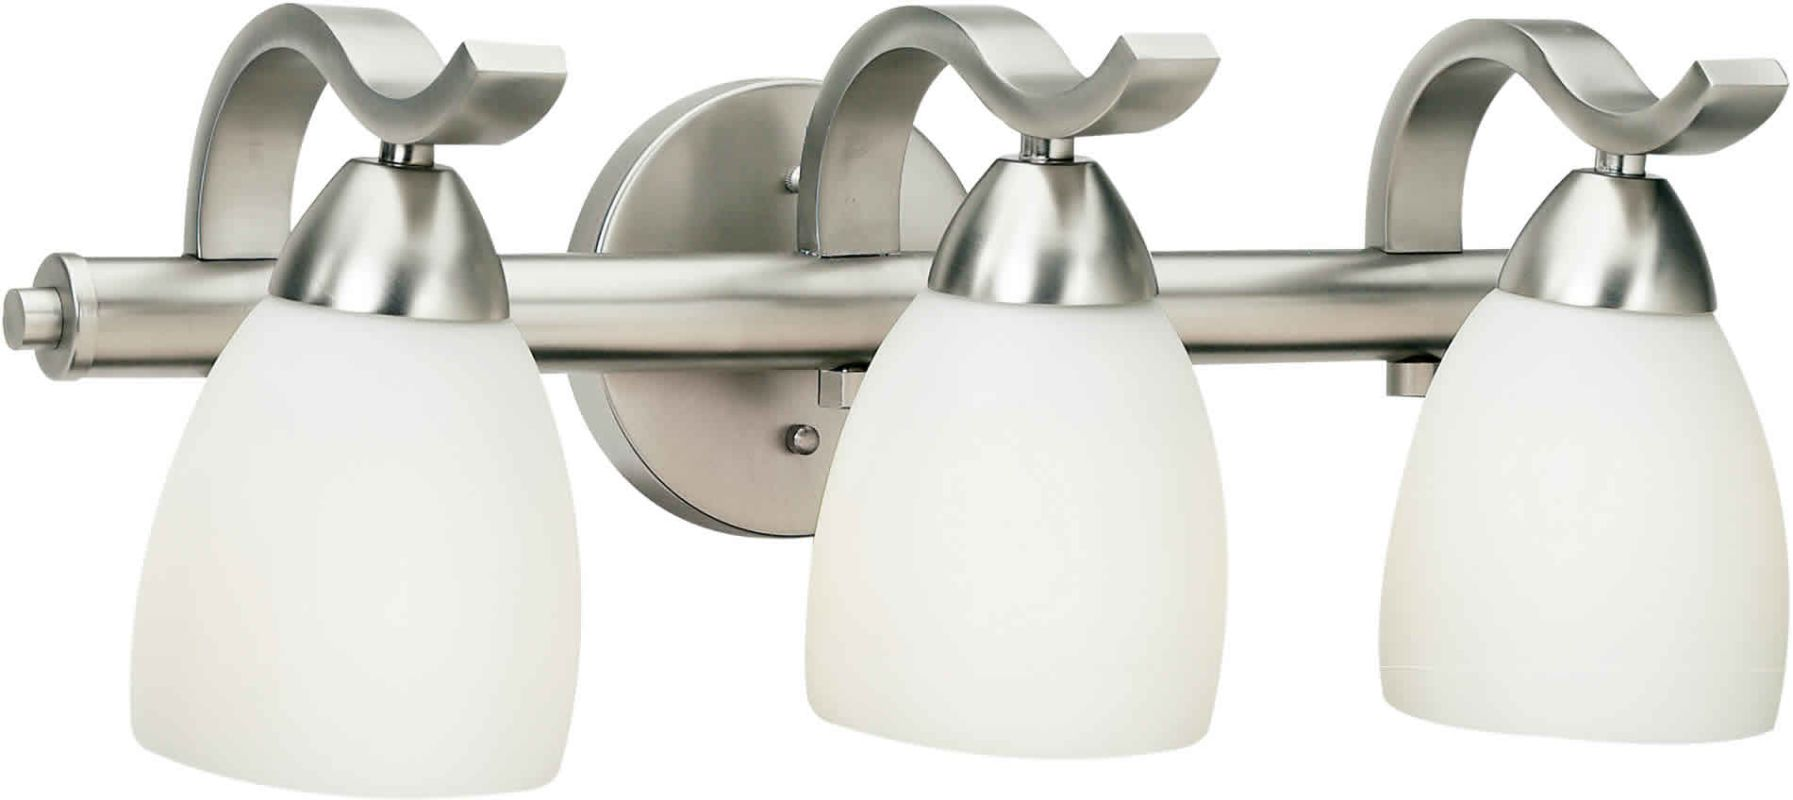 "Forte Lighting 5045-03 3 Light 19"" Wide Bathroom Fixture from the Bath"